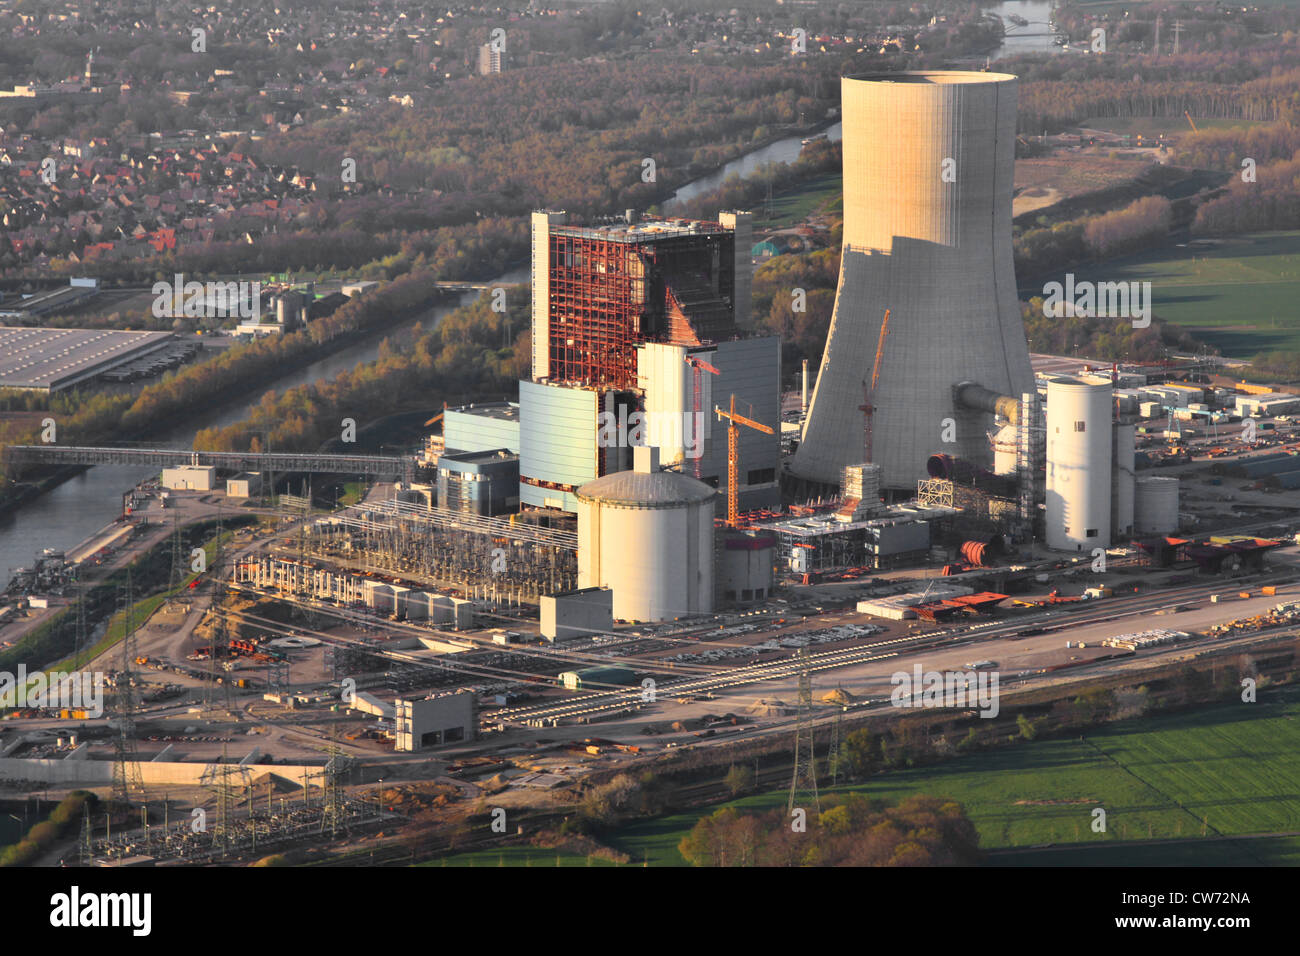 construction of a new coal-fired power plant in Datteln at Dortmund Ems channel and city of Datteln on the left, - Stock Image